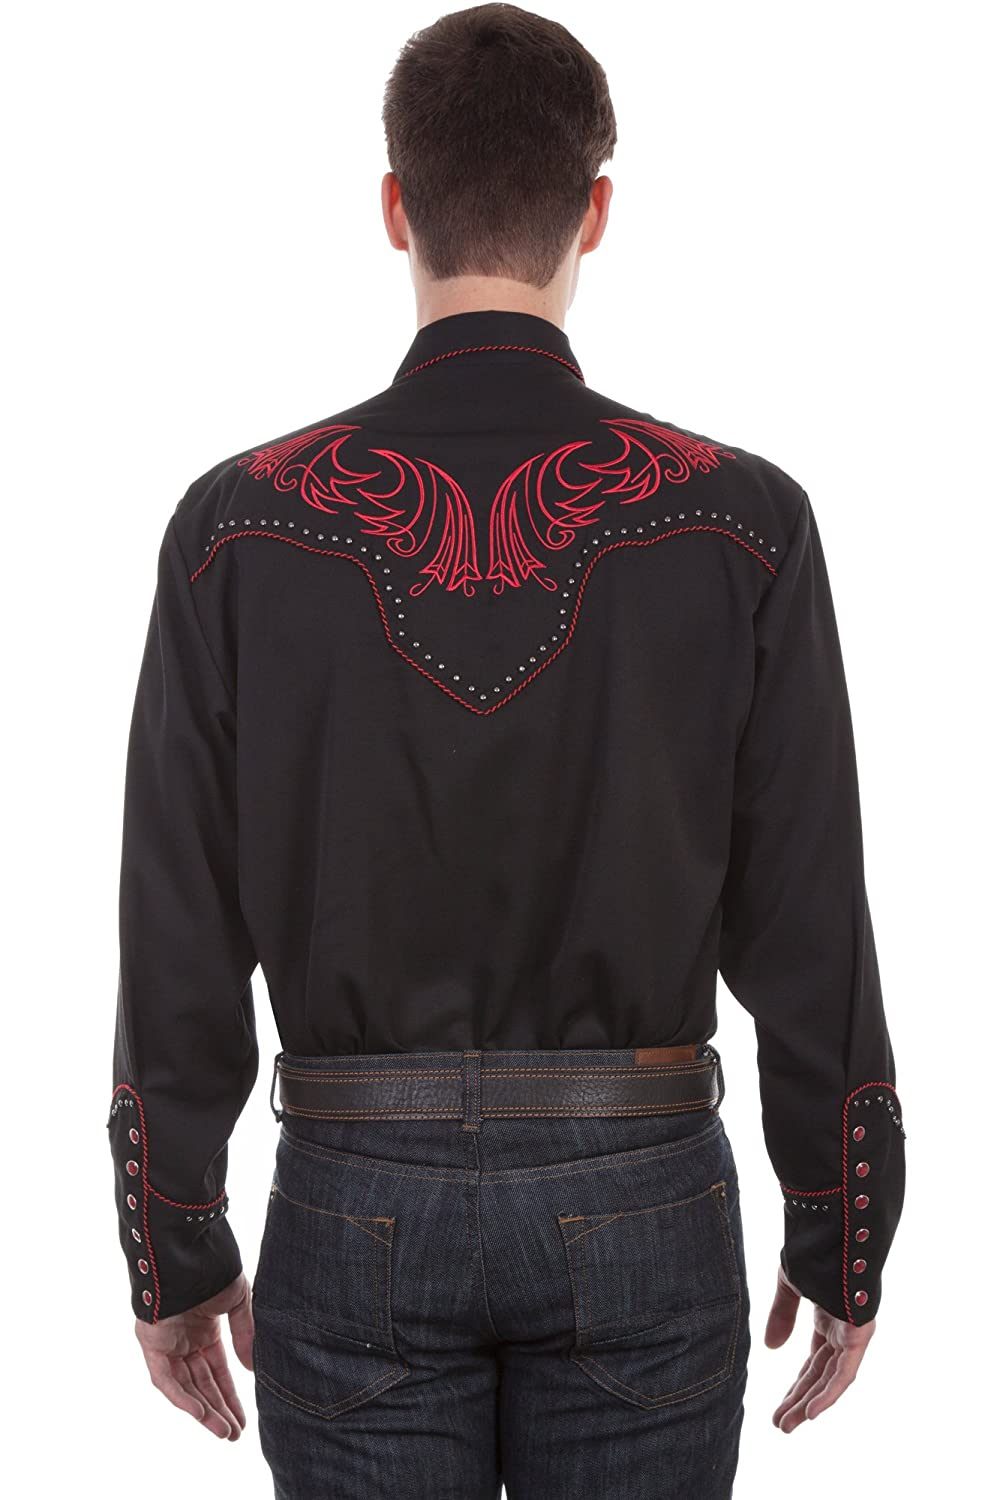 P-876 Scully Mens Embroidered Long Sleeve Western Shirt